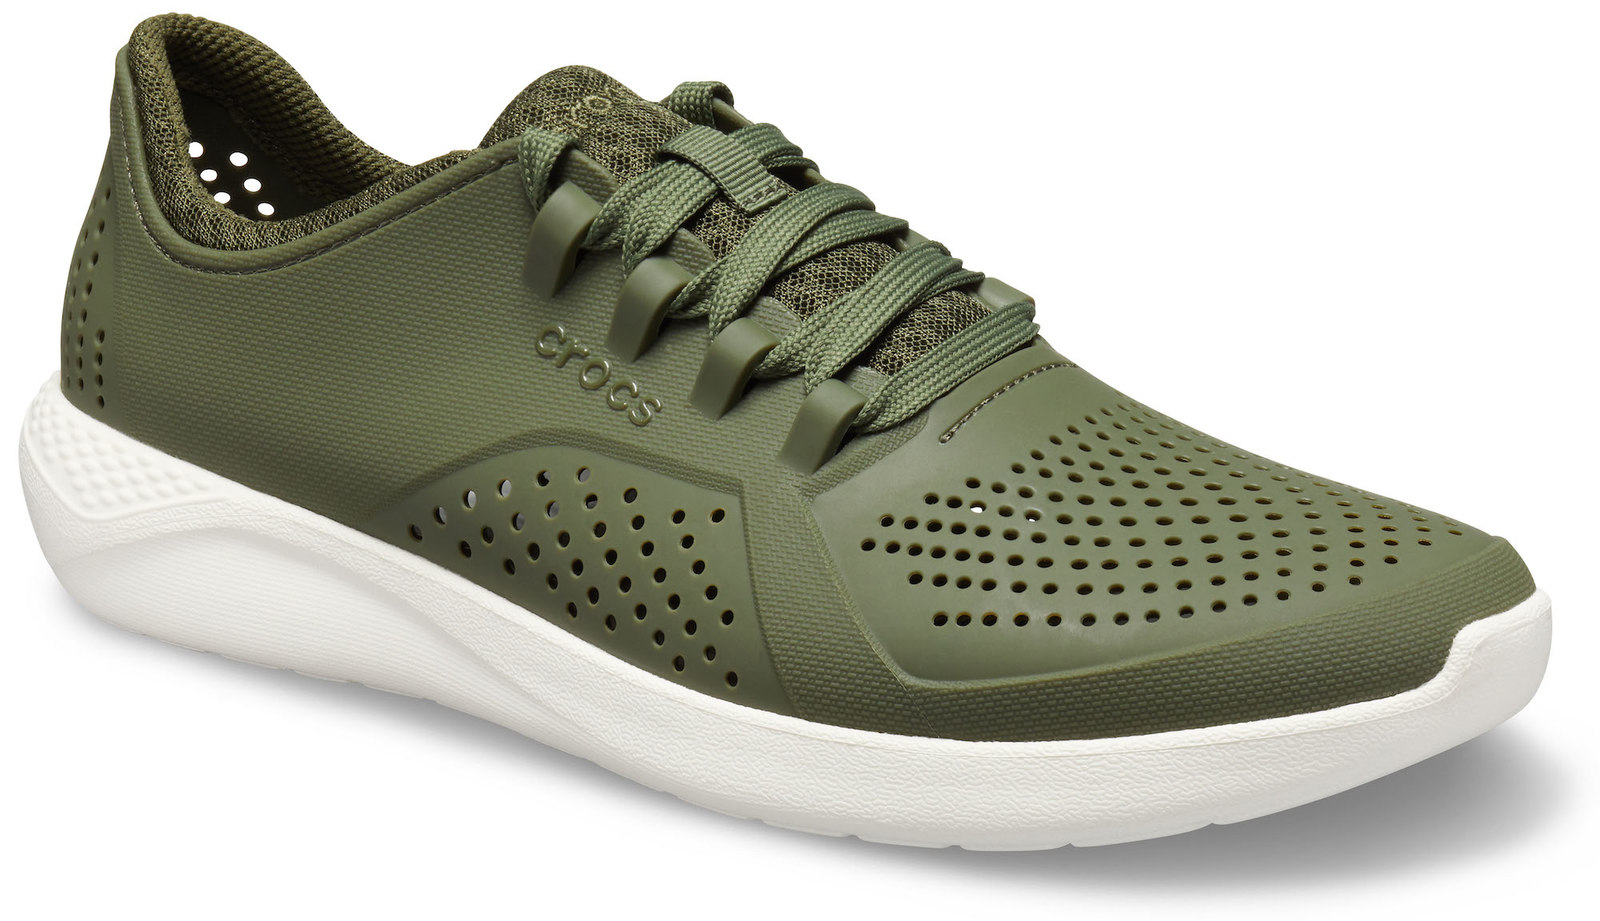 Crocs каки мъжки кецове LiteRide Pacer Army Green/White